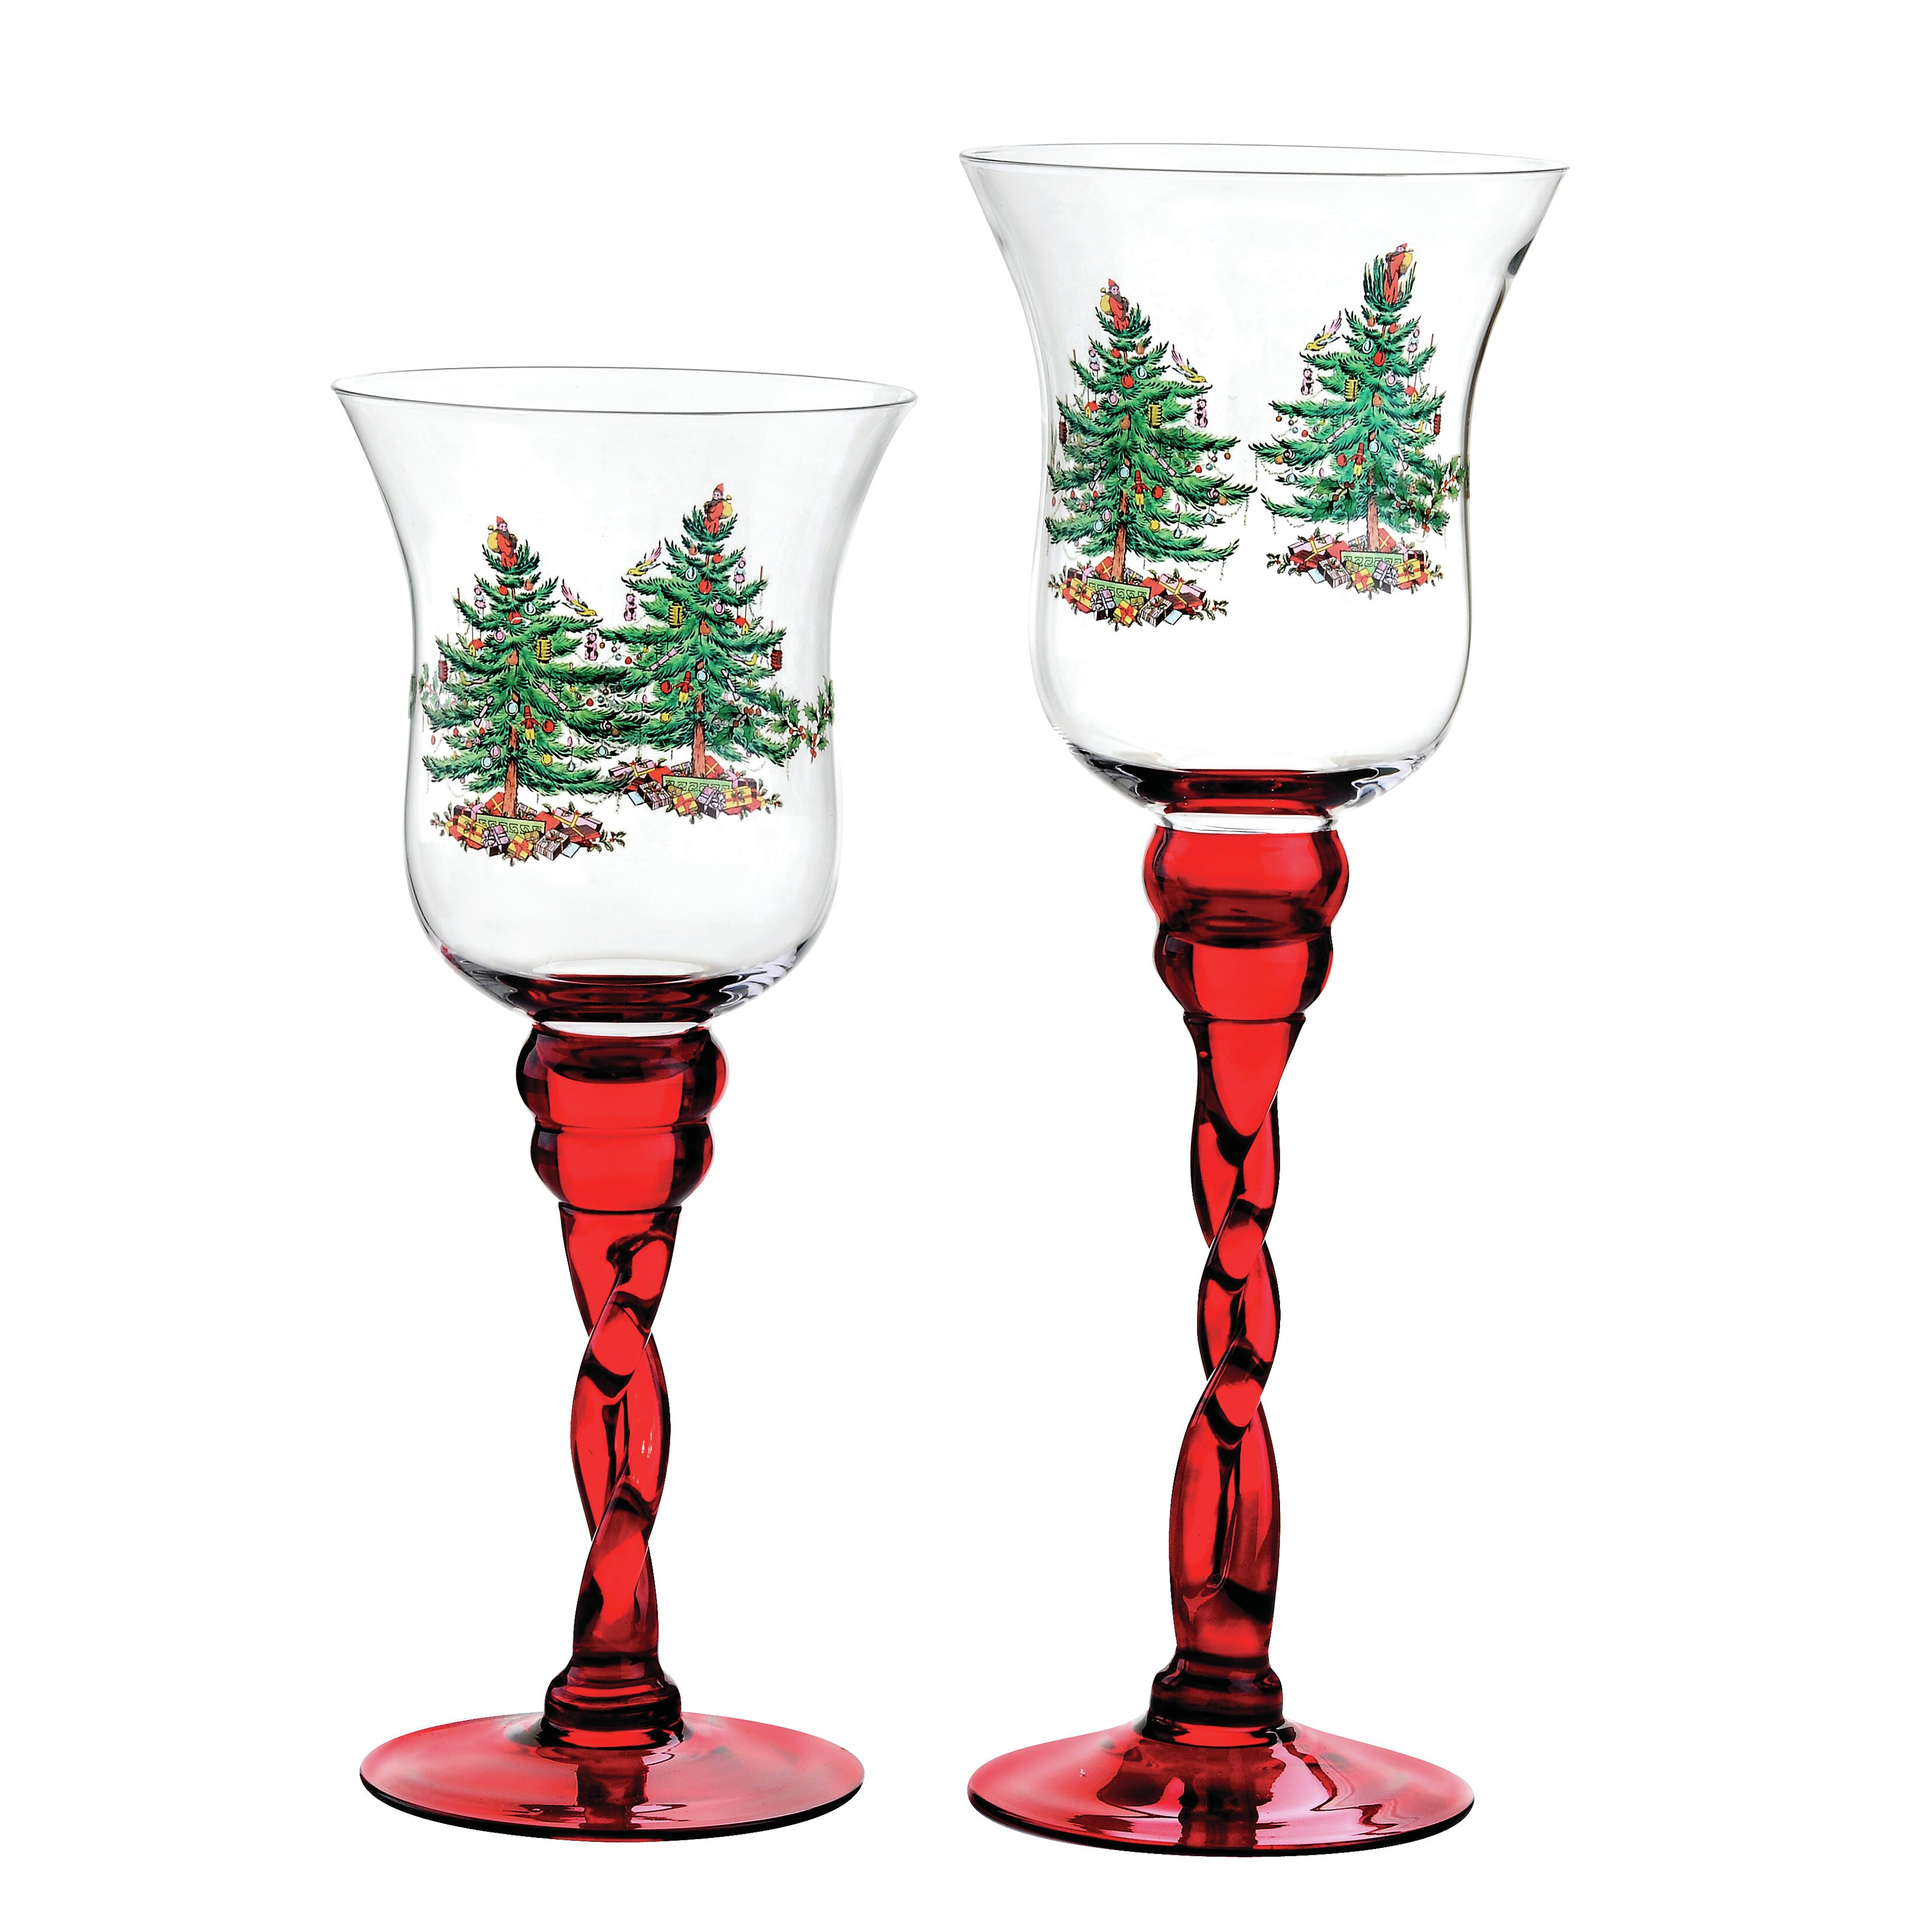 Spode christmas tree glass fluted footed candle holders reviews spode christmas tree glass fluted footed candle holders reviews wayfair reviewsmspy